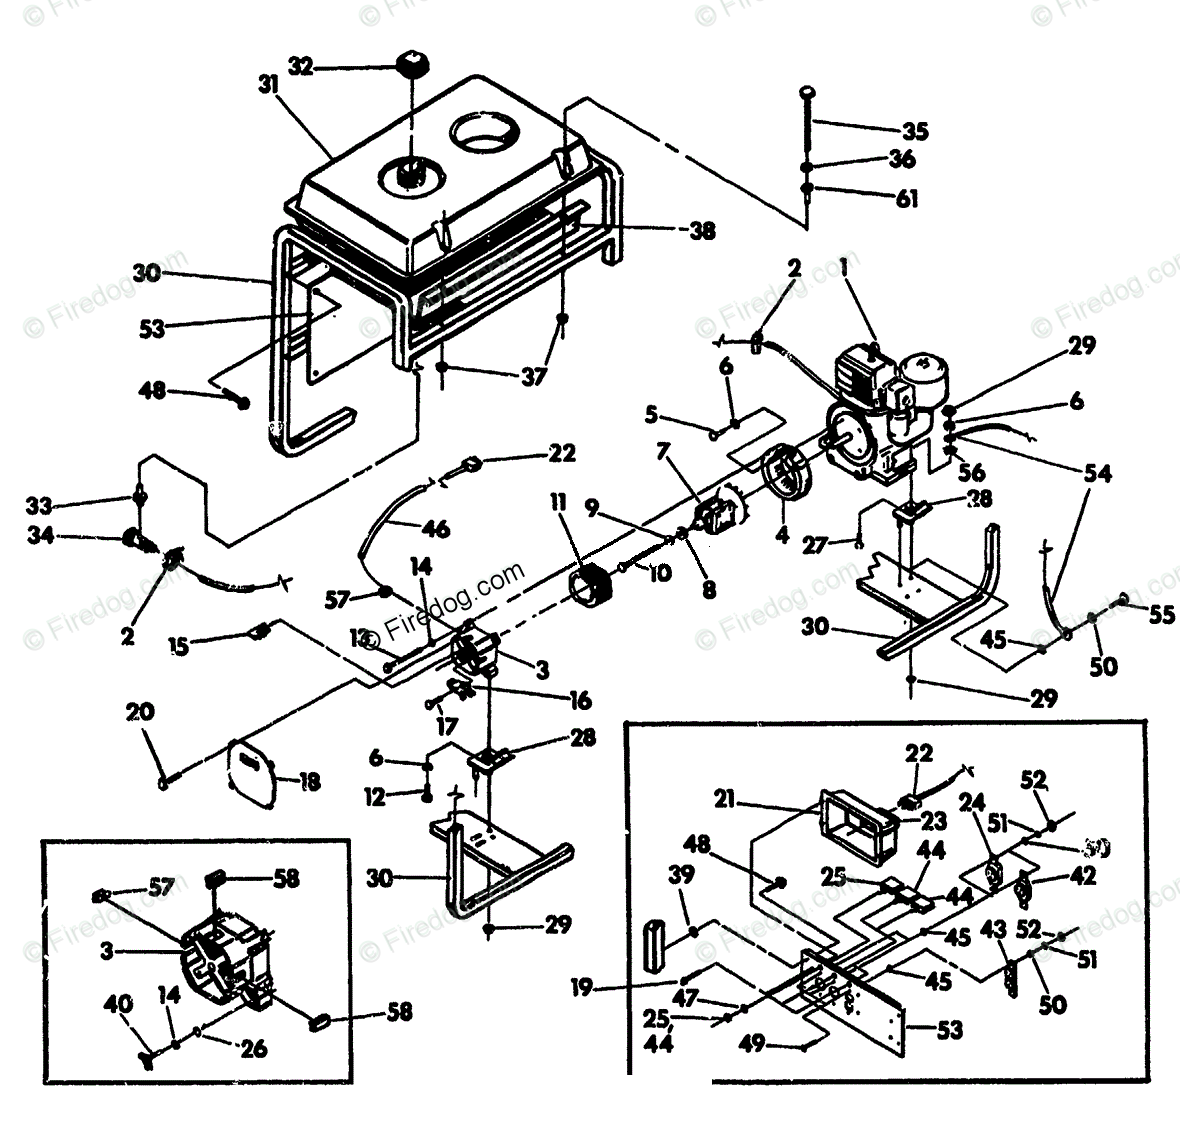 Briggs And Stratton 15 5 Hp Parts Diagram Wiring Library 26 Engine Power Products United States Portable Generators Oem For Tecumseh 10